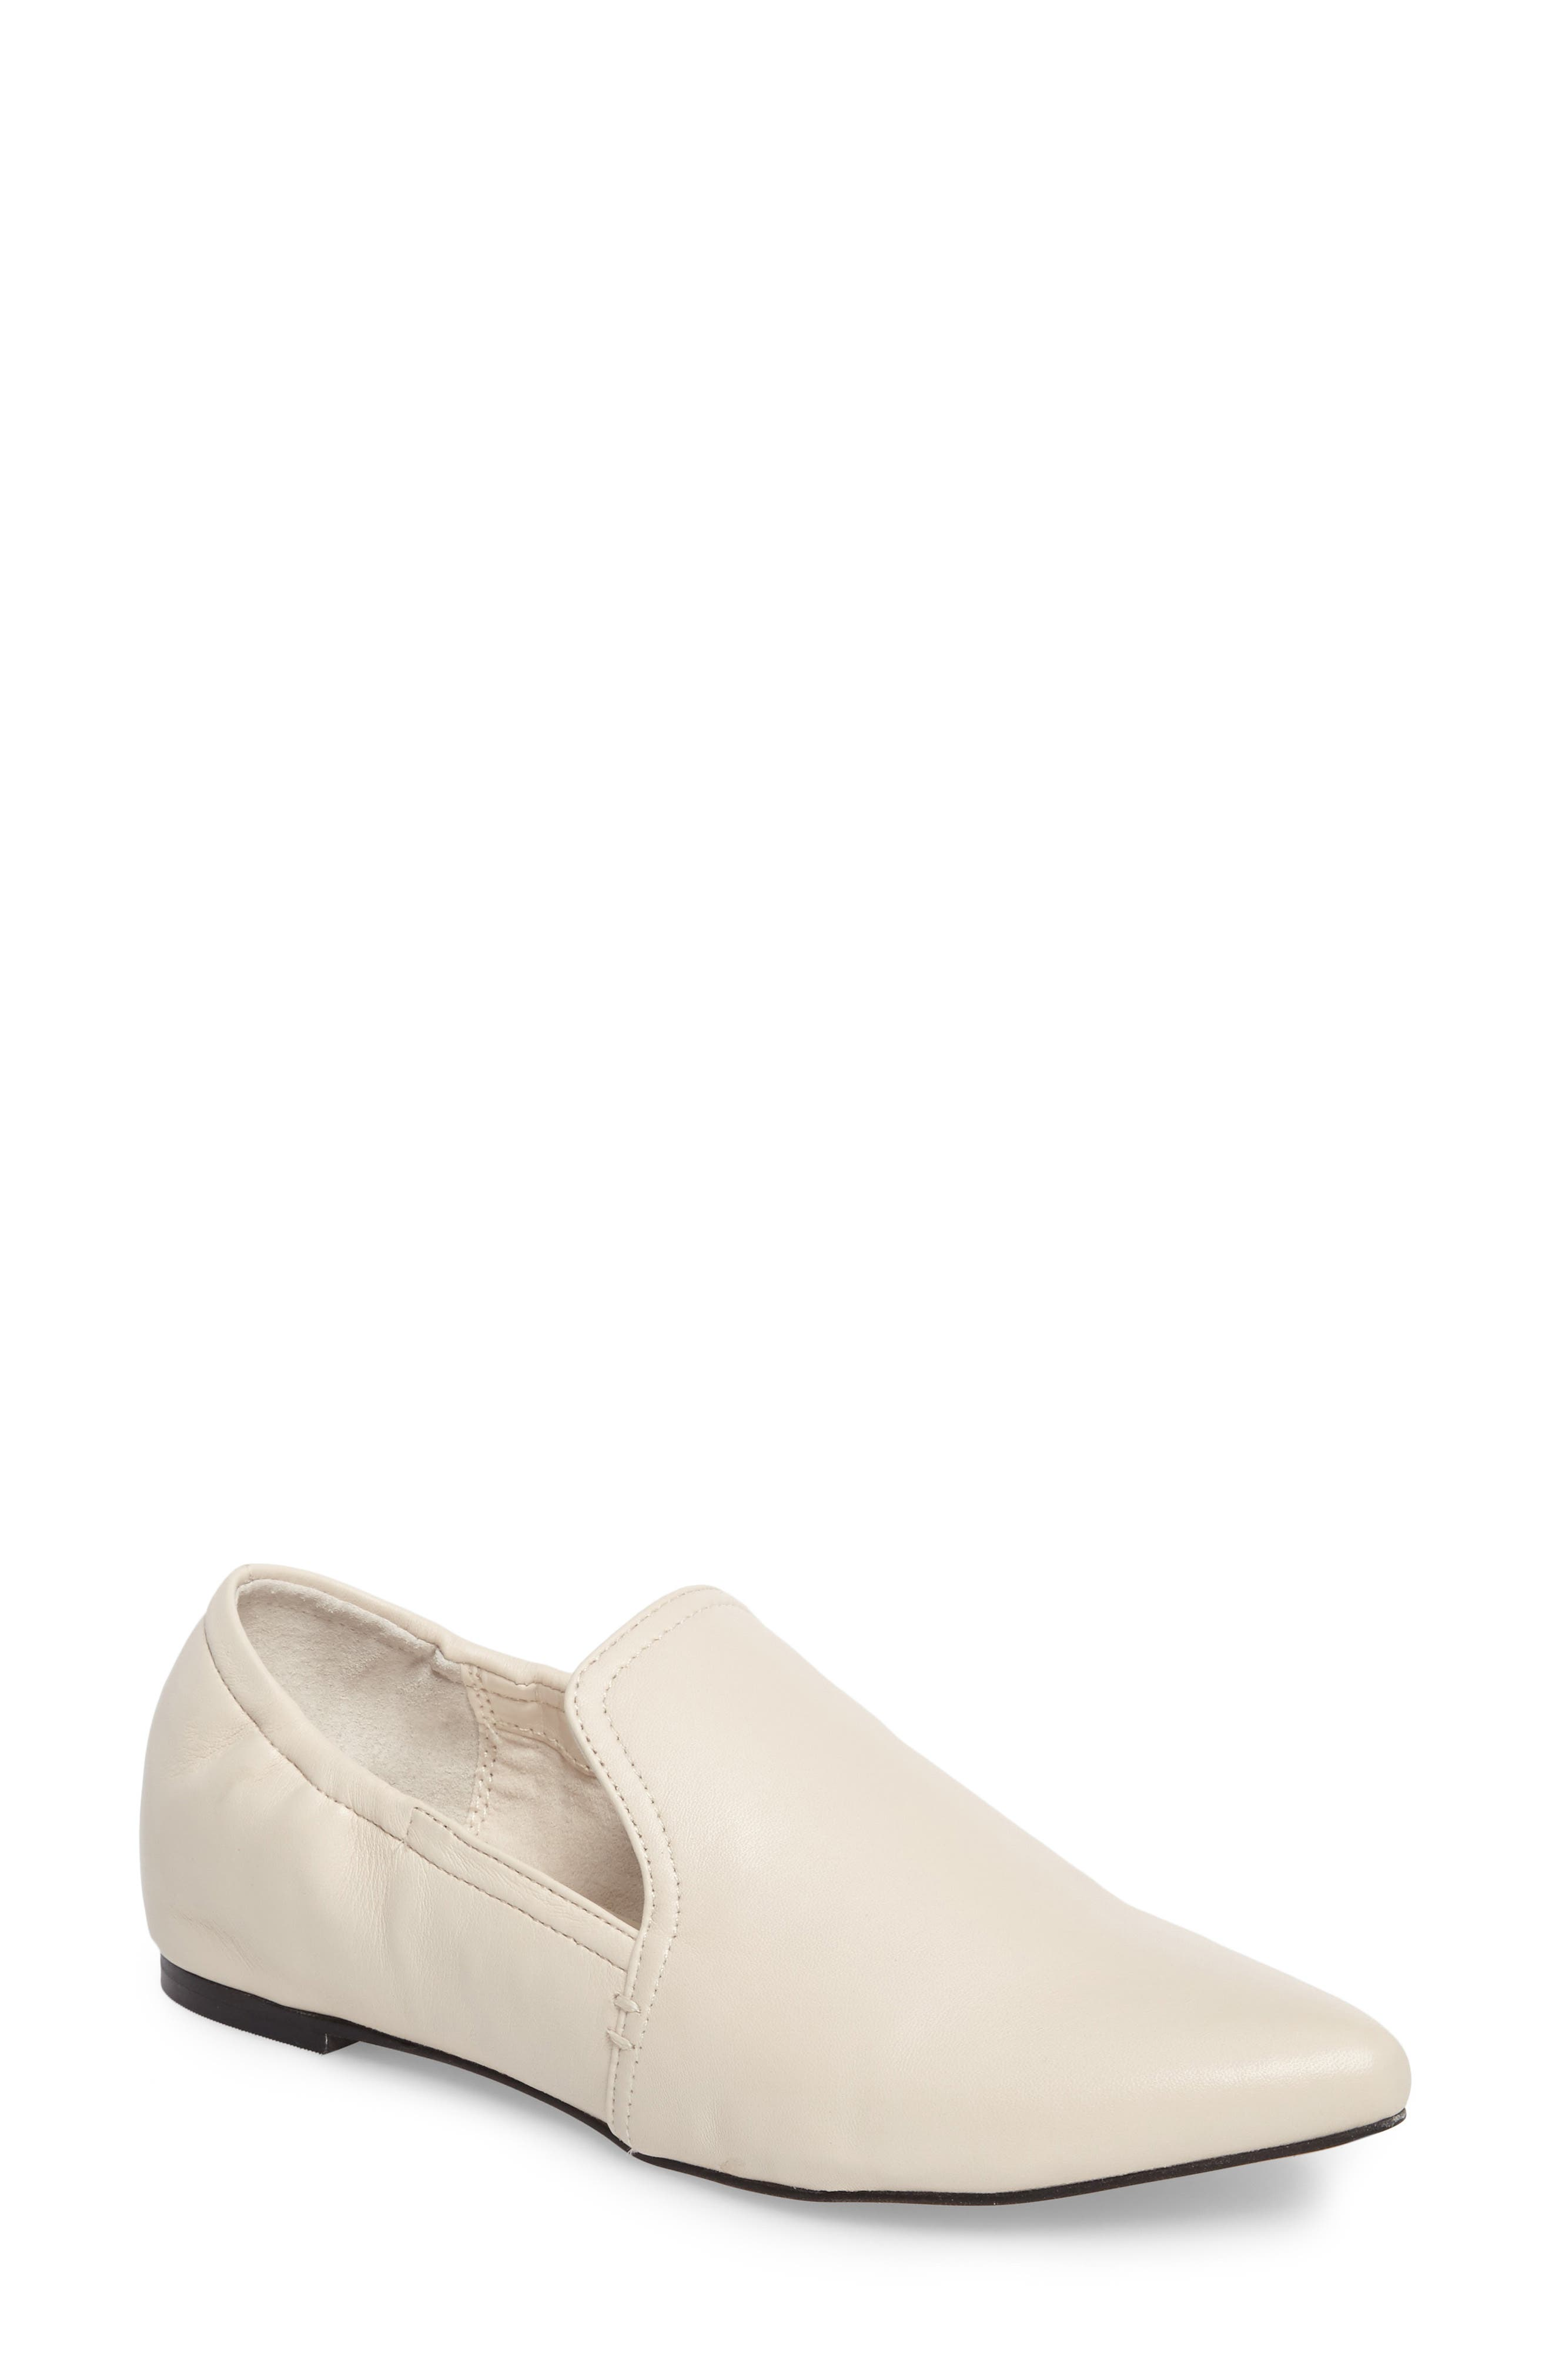 Hamond Loafer,                             Main thumbnail 1, color,                             Ivory Leather